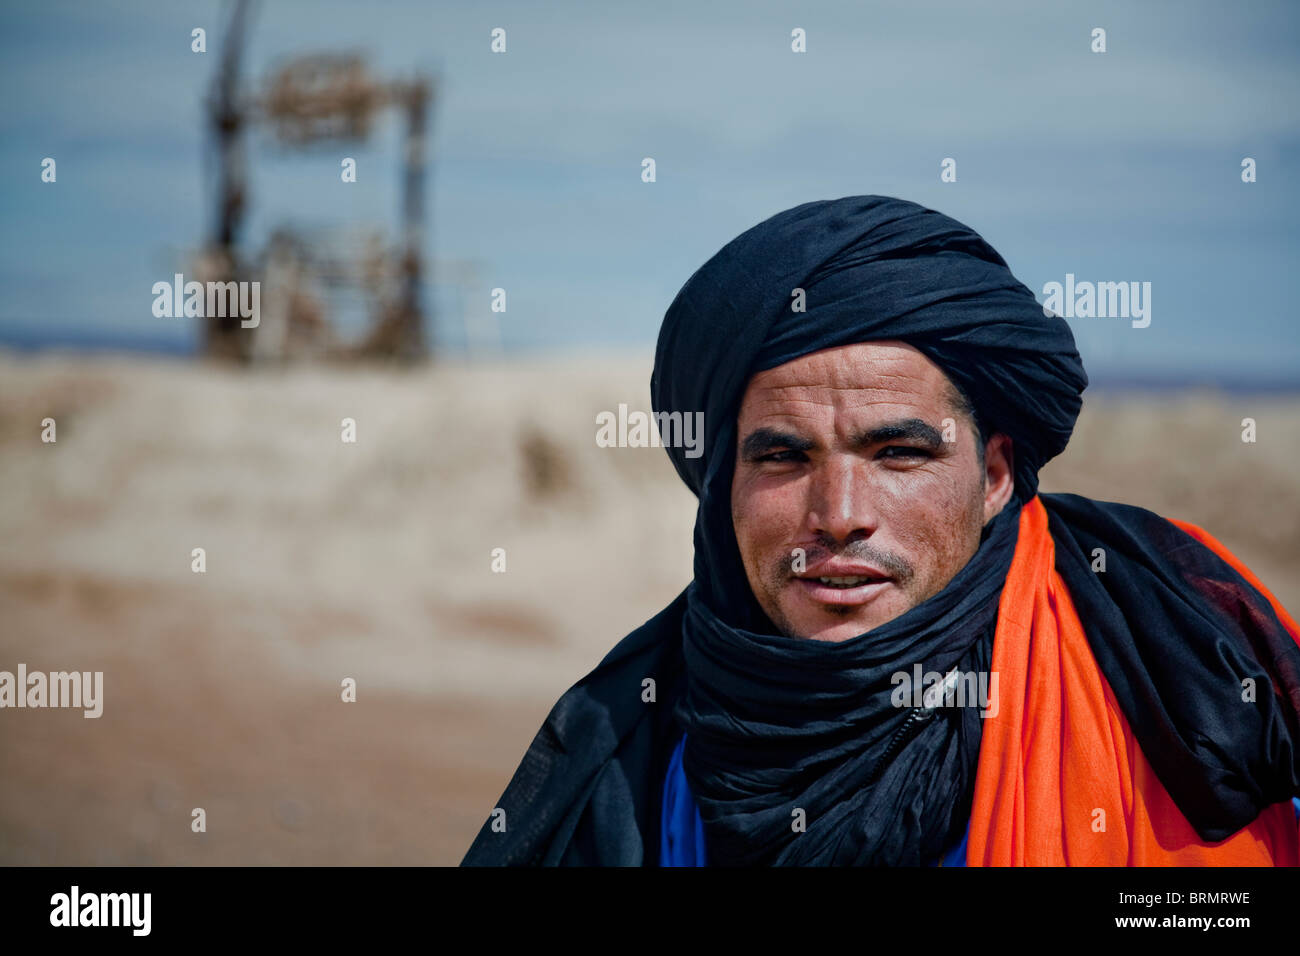 Portrait of a Berber man standing in front of an old well at a place of rest. - Stock Image